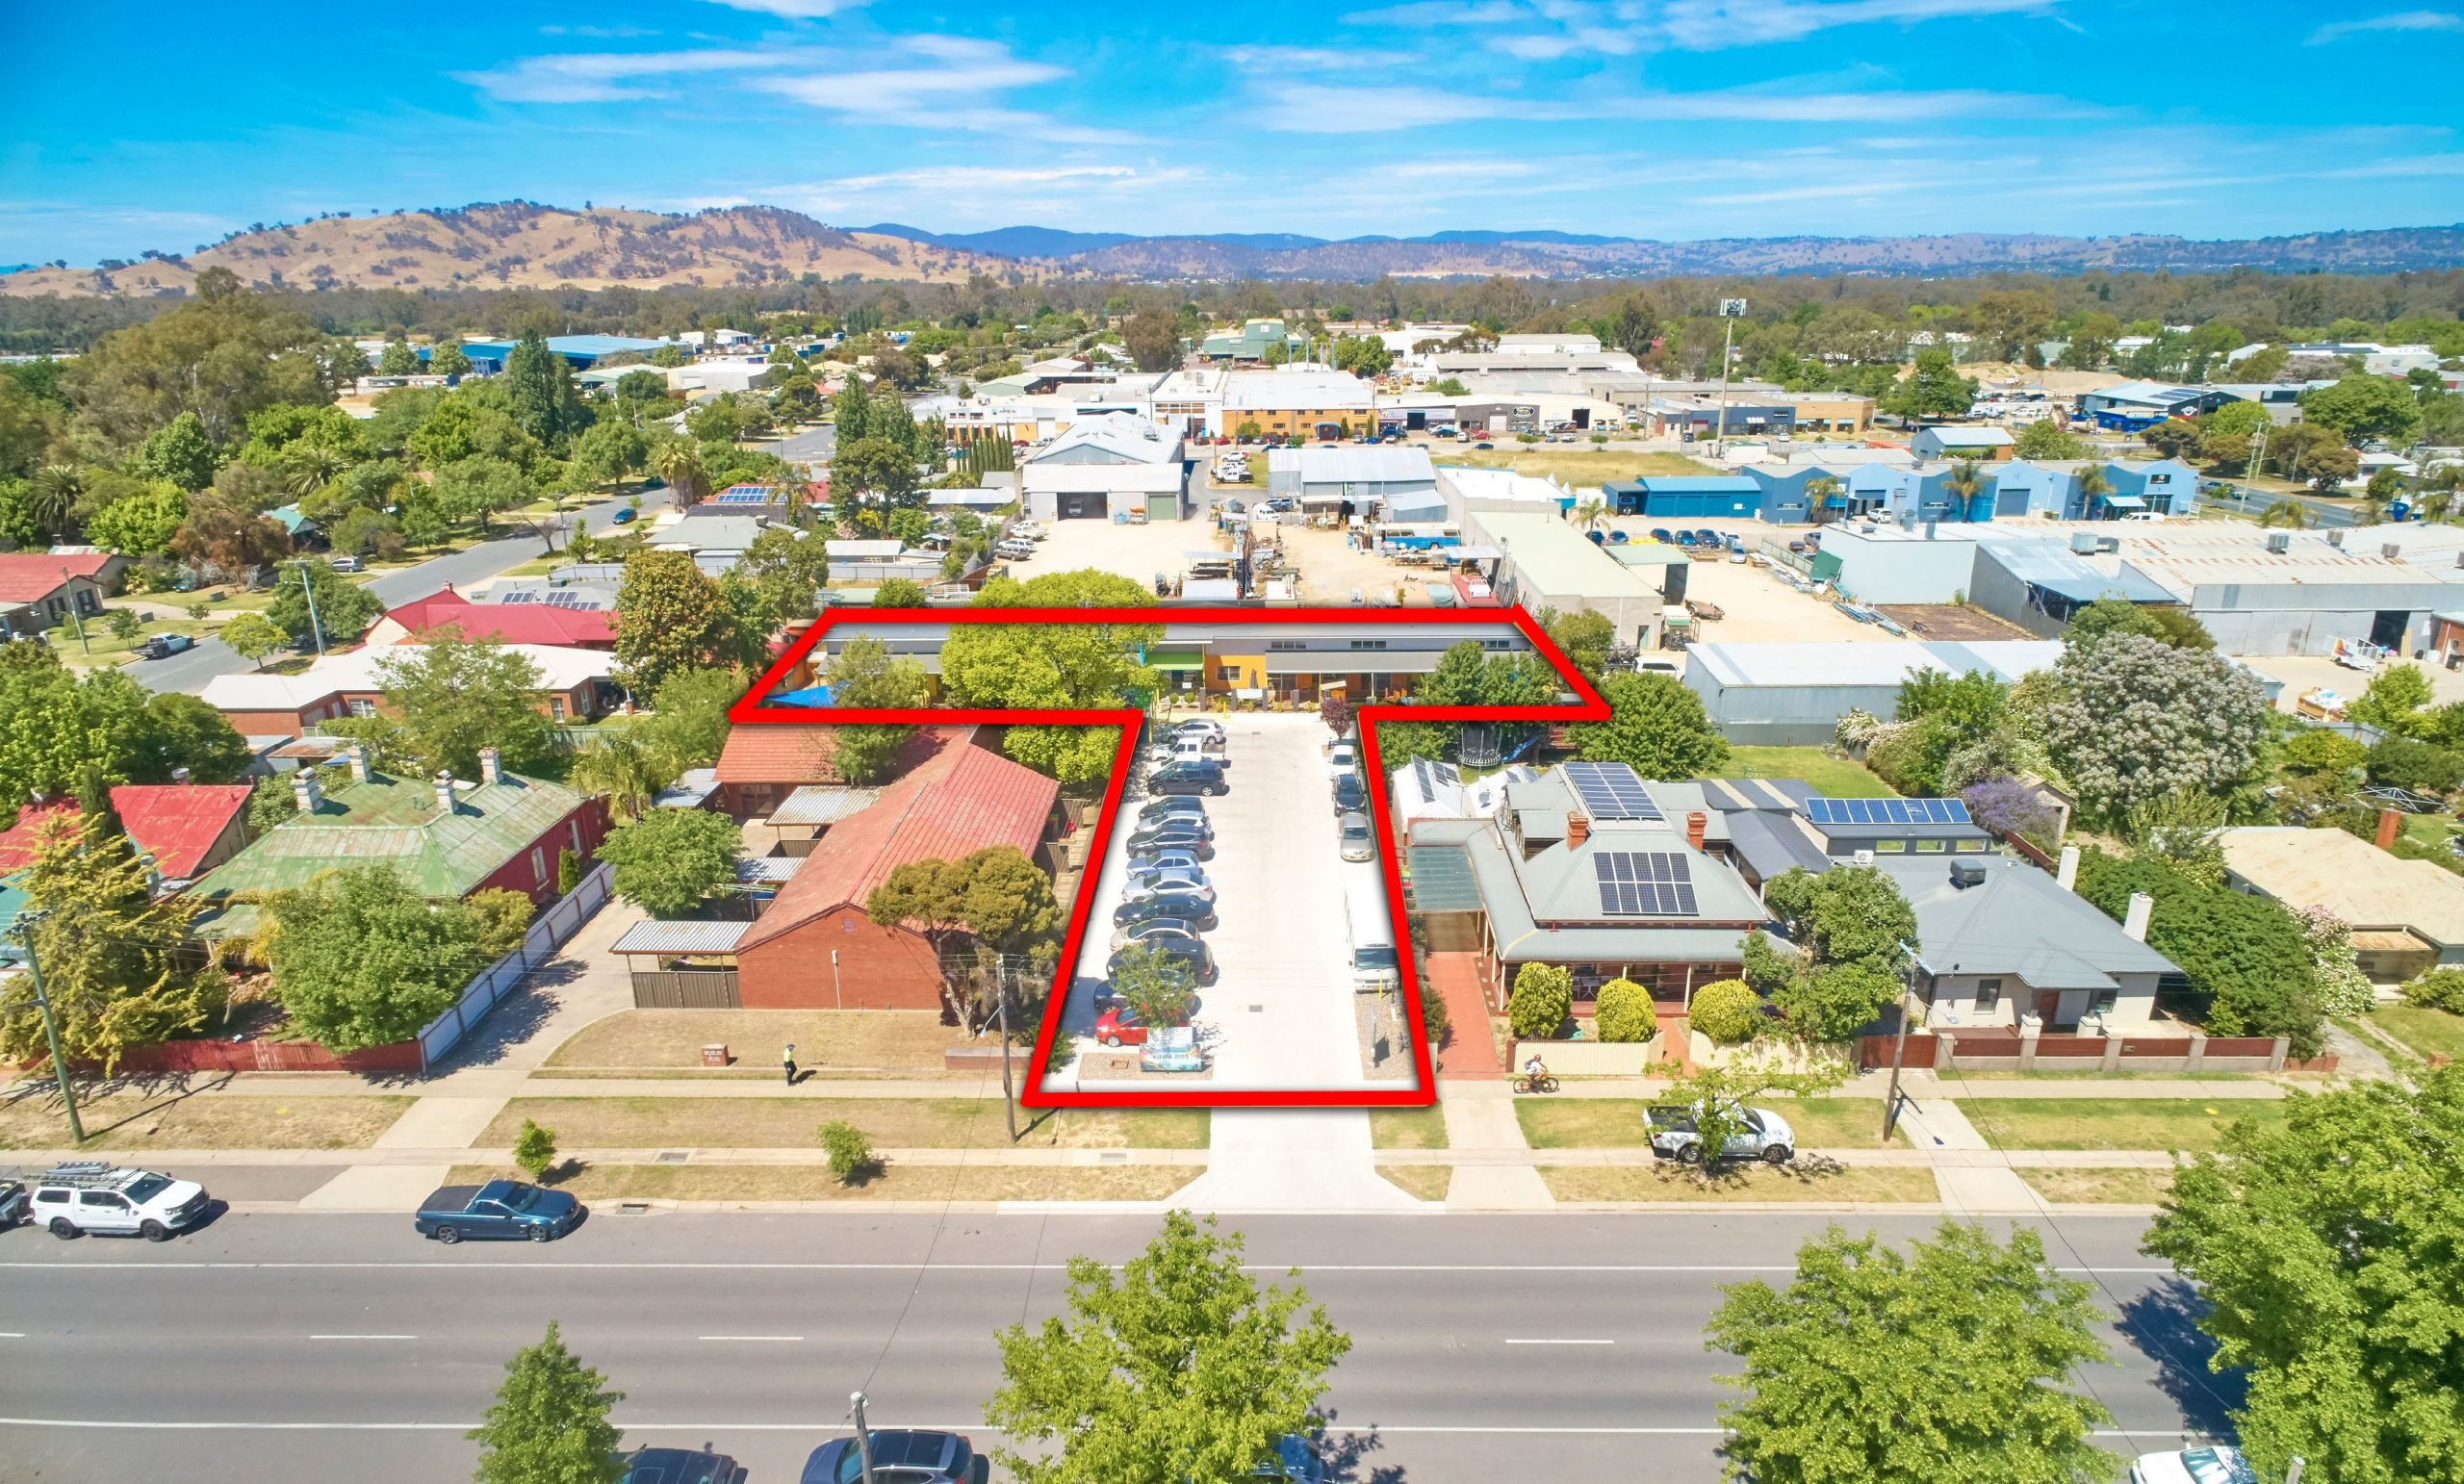 Childcare centre snapped up for 2.65m at auction